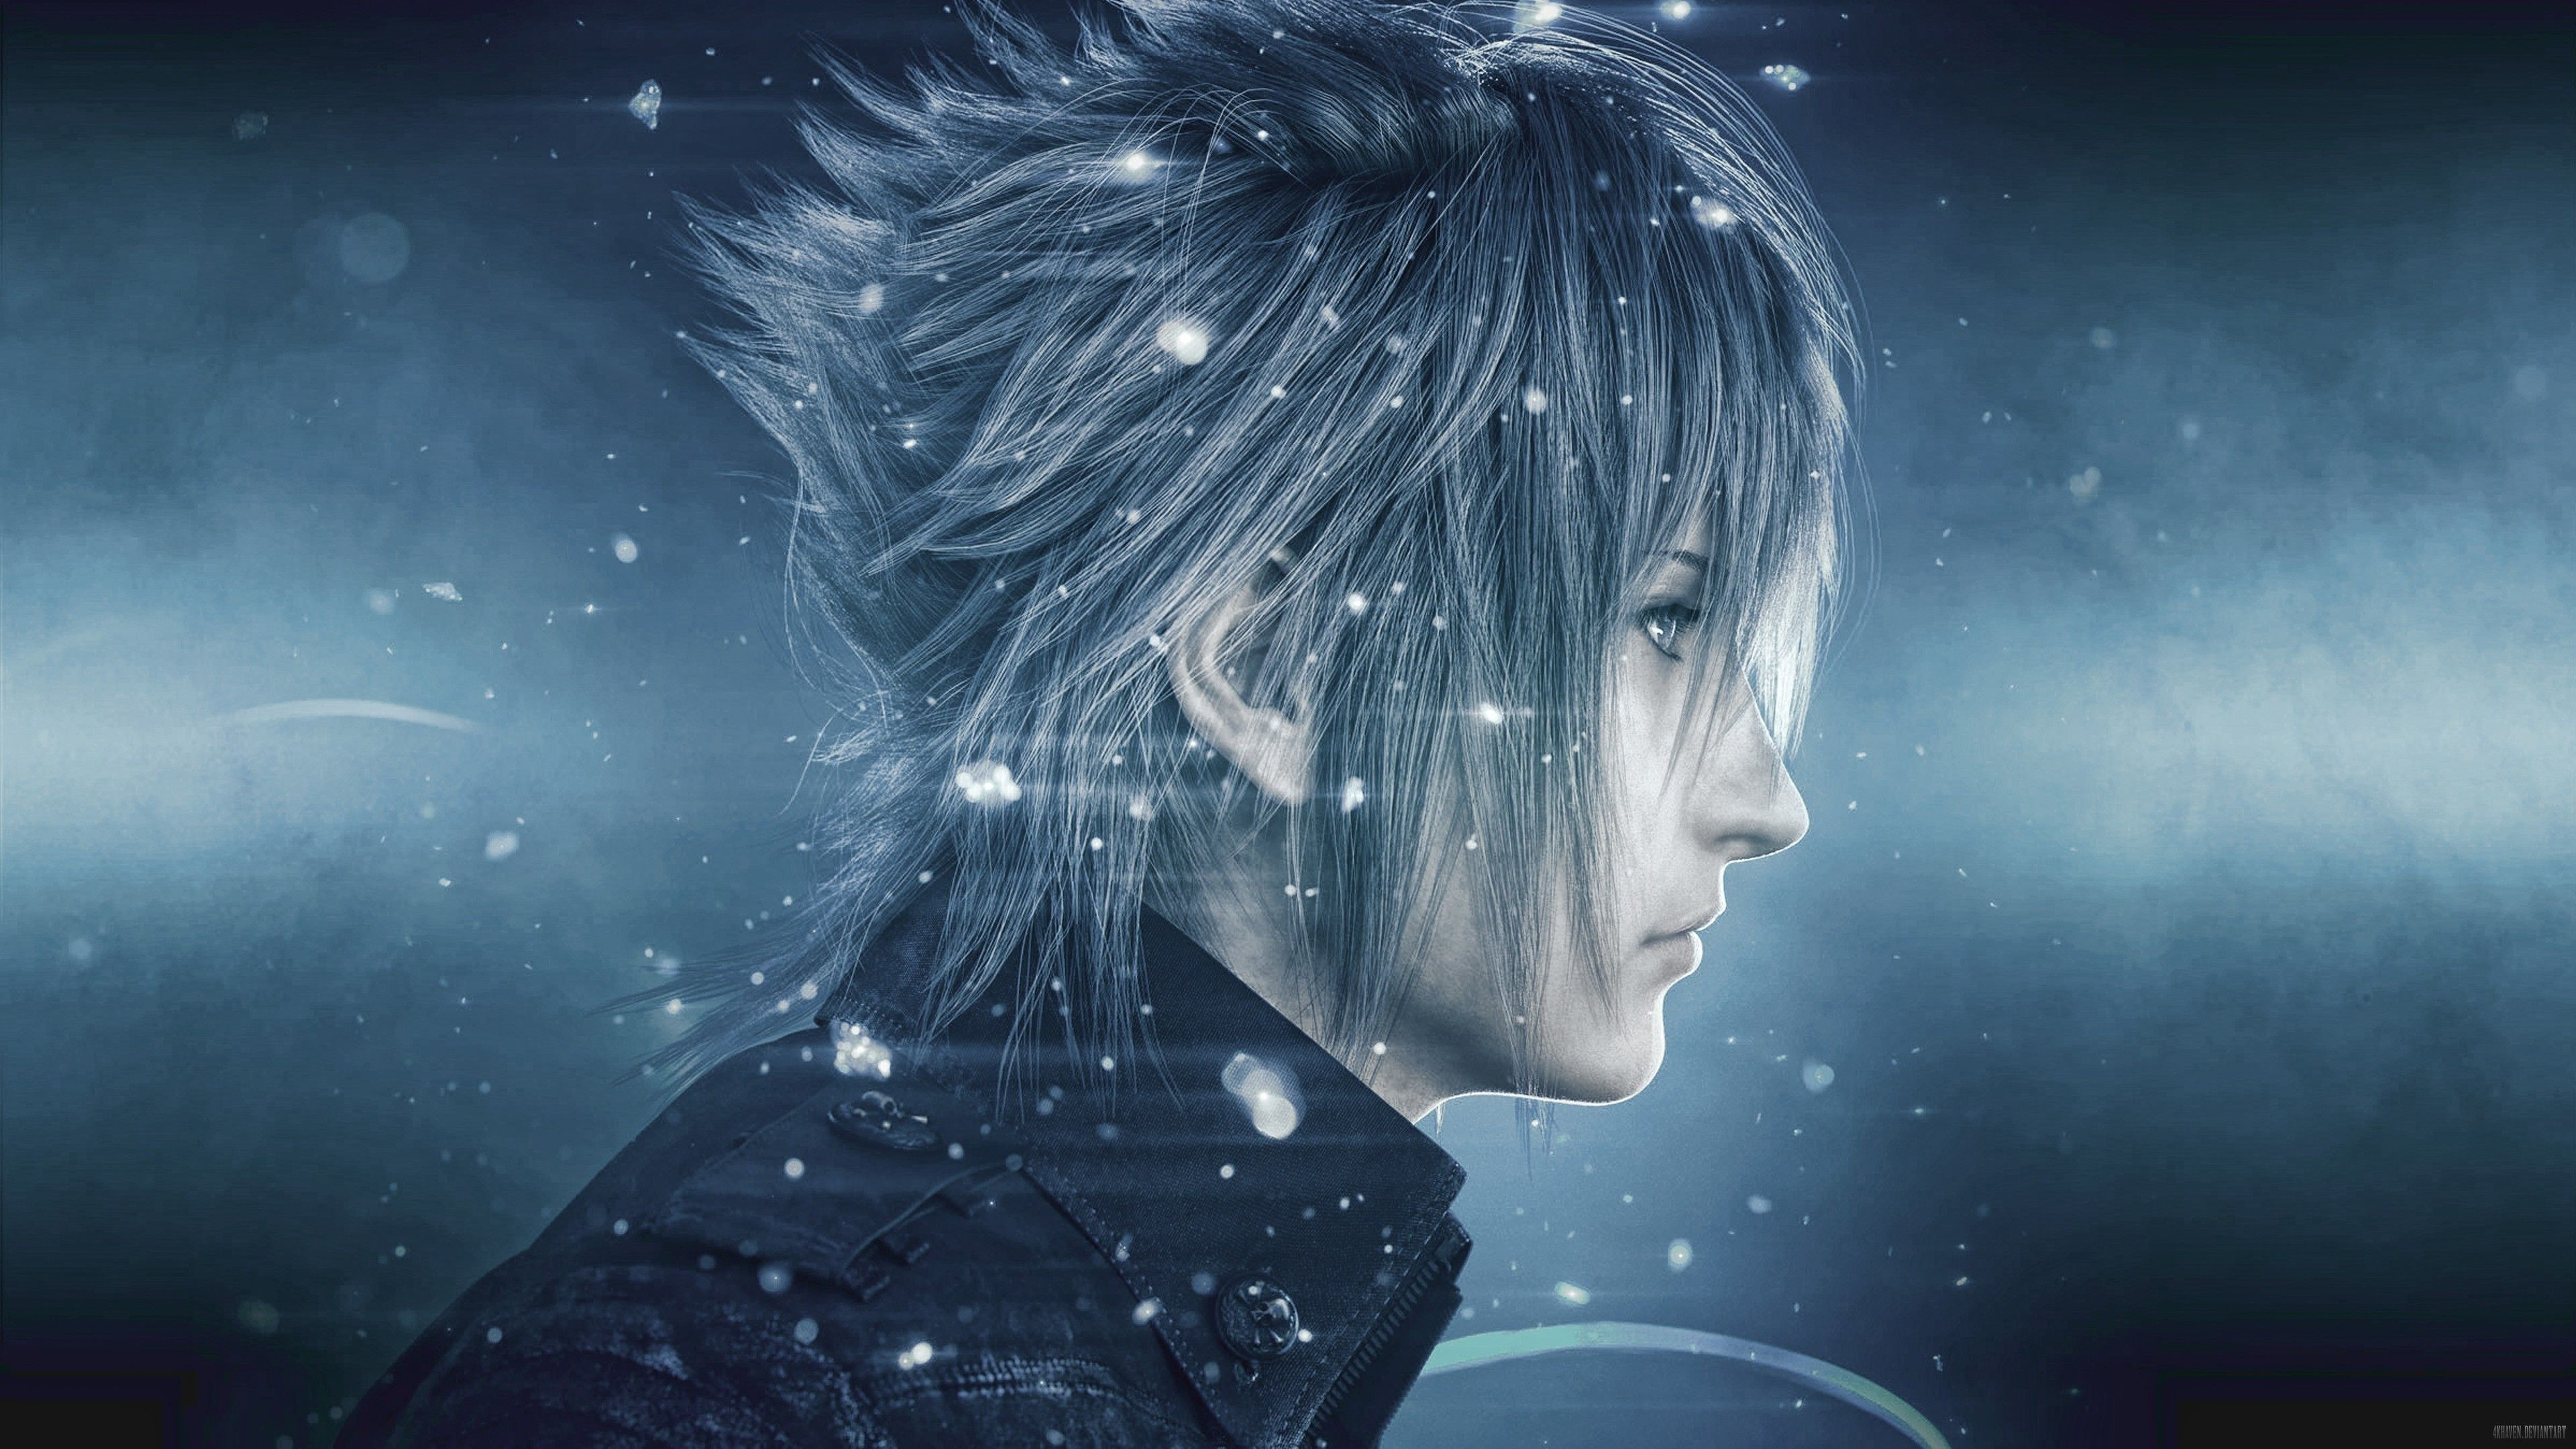 3840x2160 Final Fantasy Xv 4k Wallpapers 1080p High Quality Noctis Final Fantasy Final Fantasy Anime Final Fantasy Xv Wallpapers